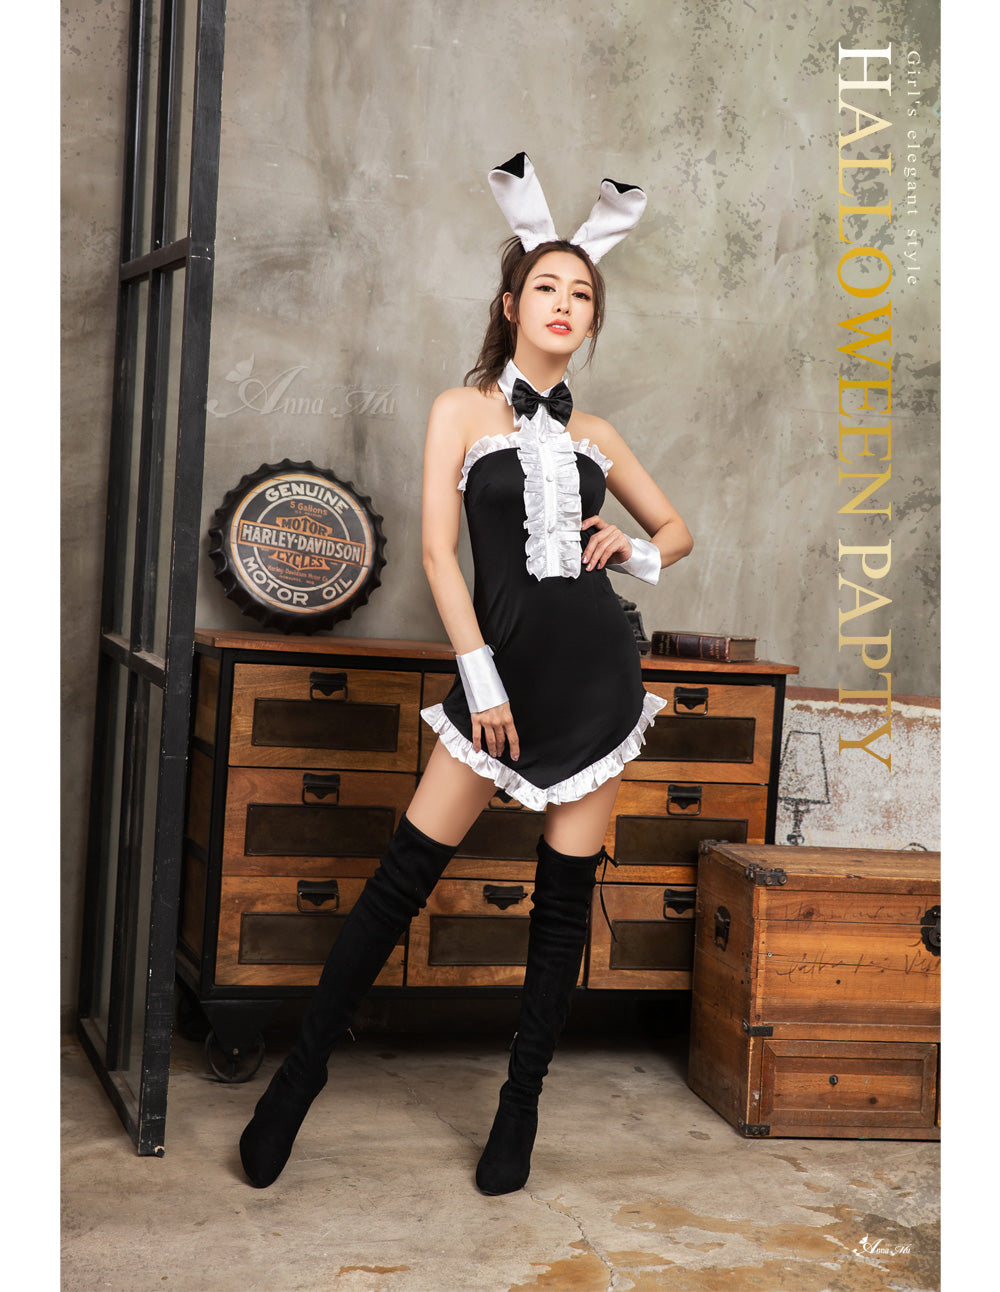 Lingeriecats Halloween Sexy Black Bunny 5 Piece Costume -White Ears - LingerieCats